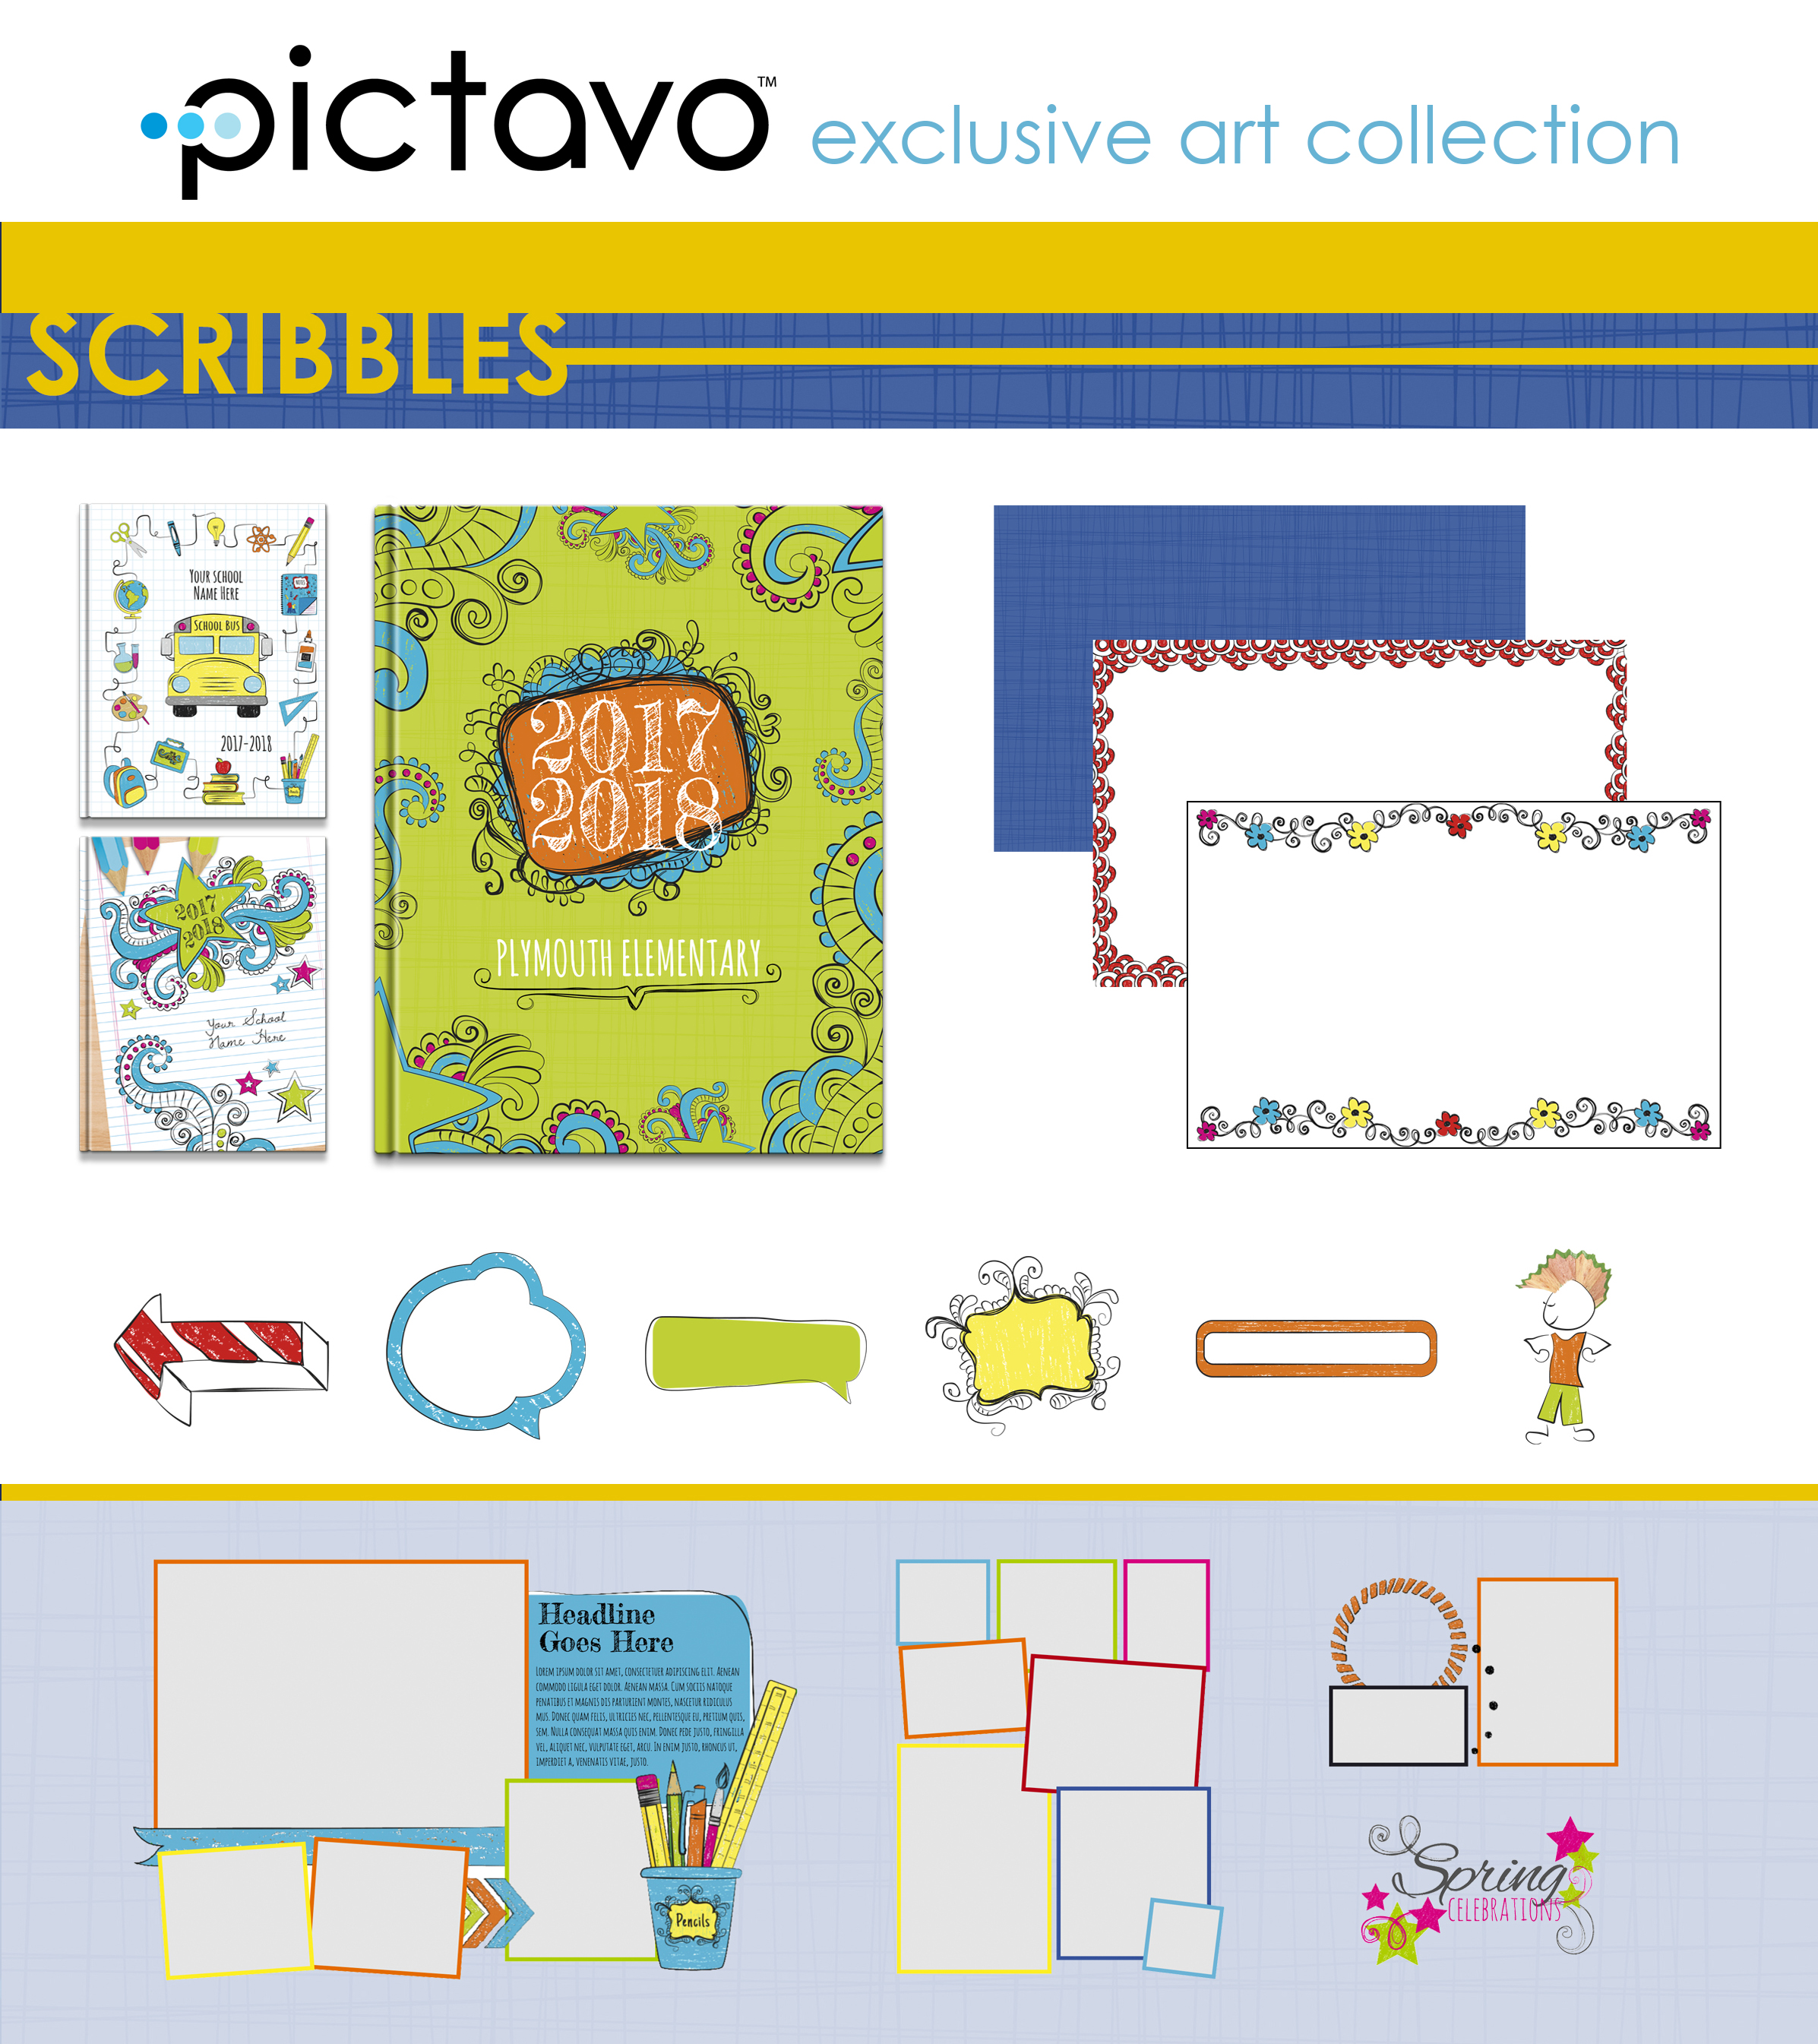 Filled with hand-drawn doodles and whimsy, the SCRIBBLES collection is a fun, unique style to pair with your photos and stories from the year!